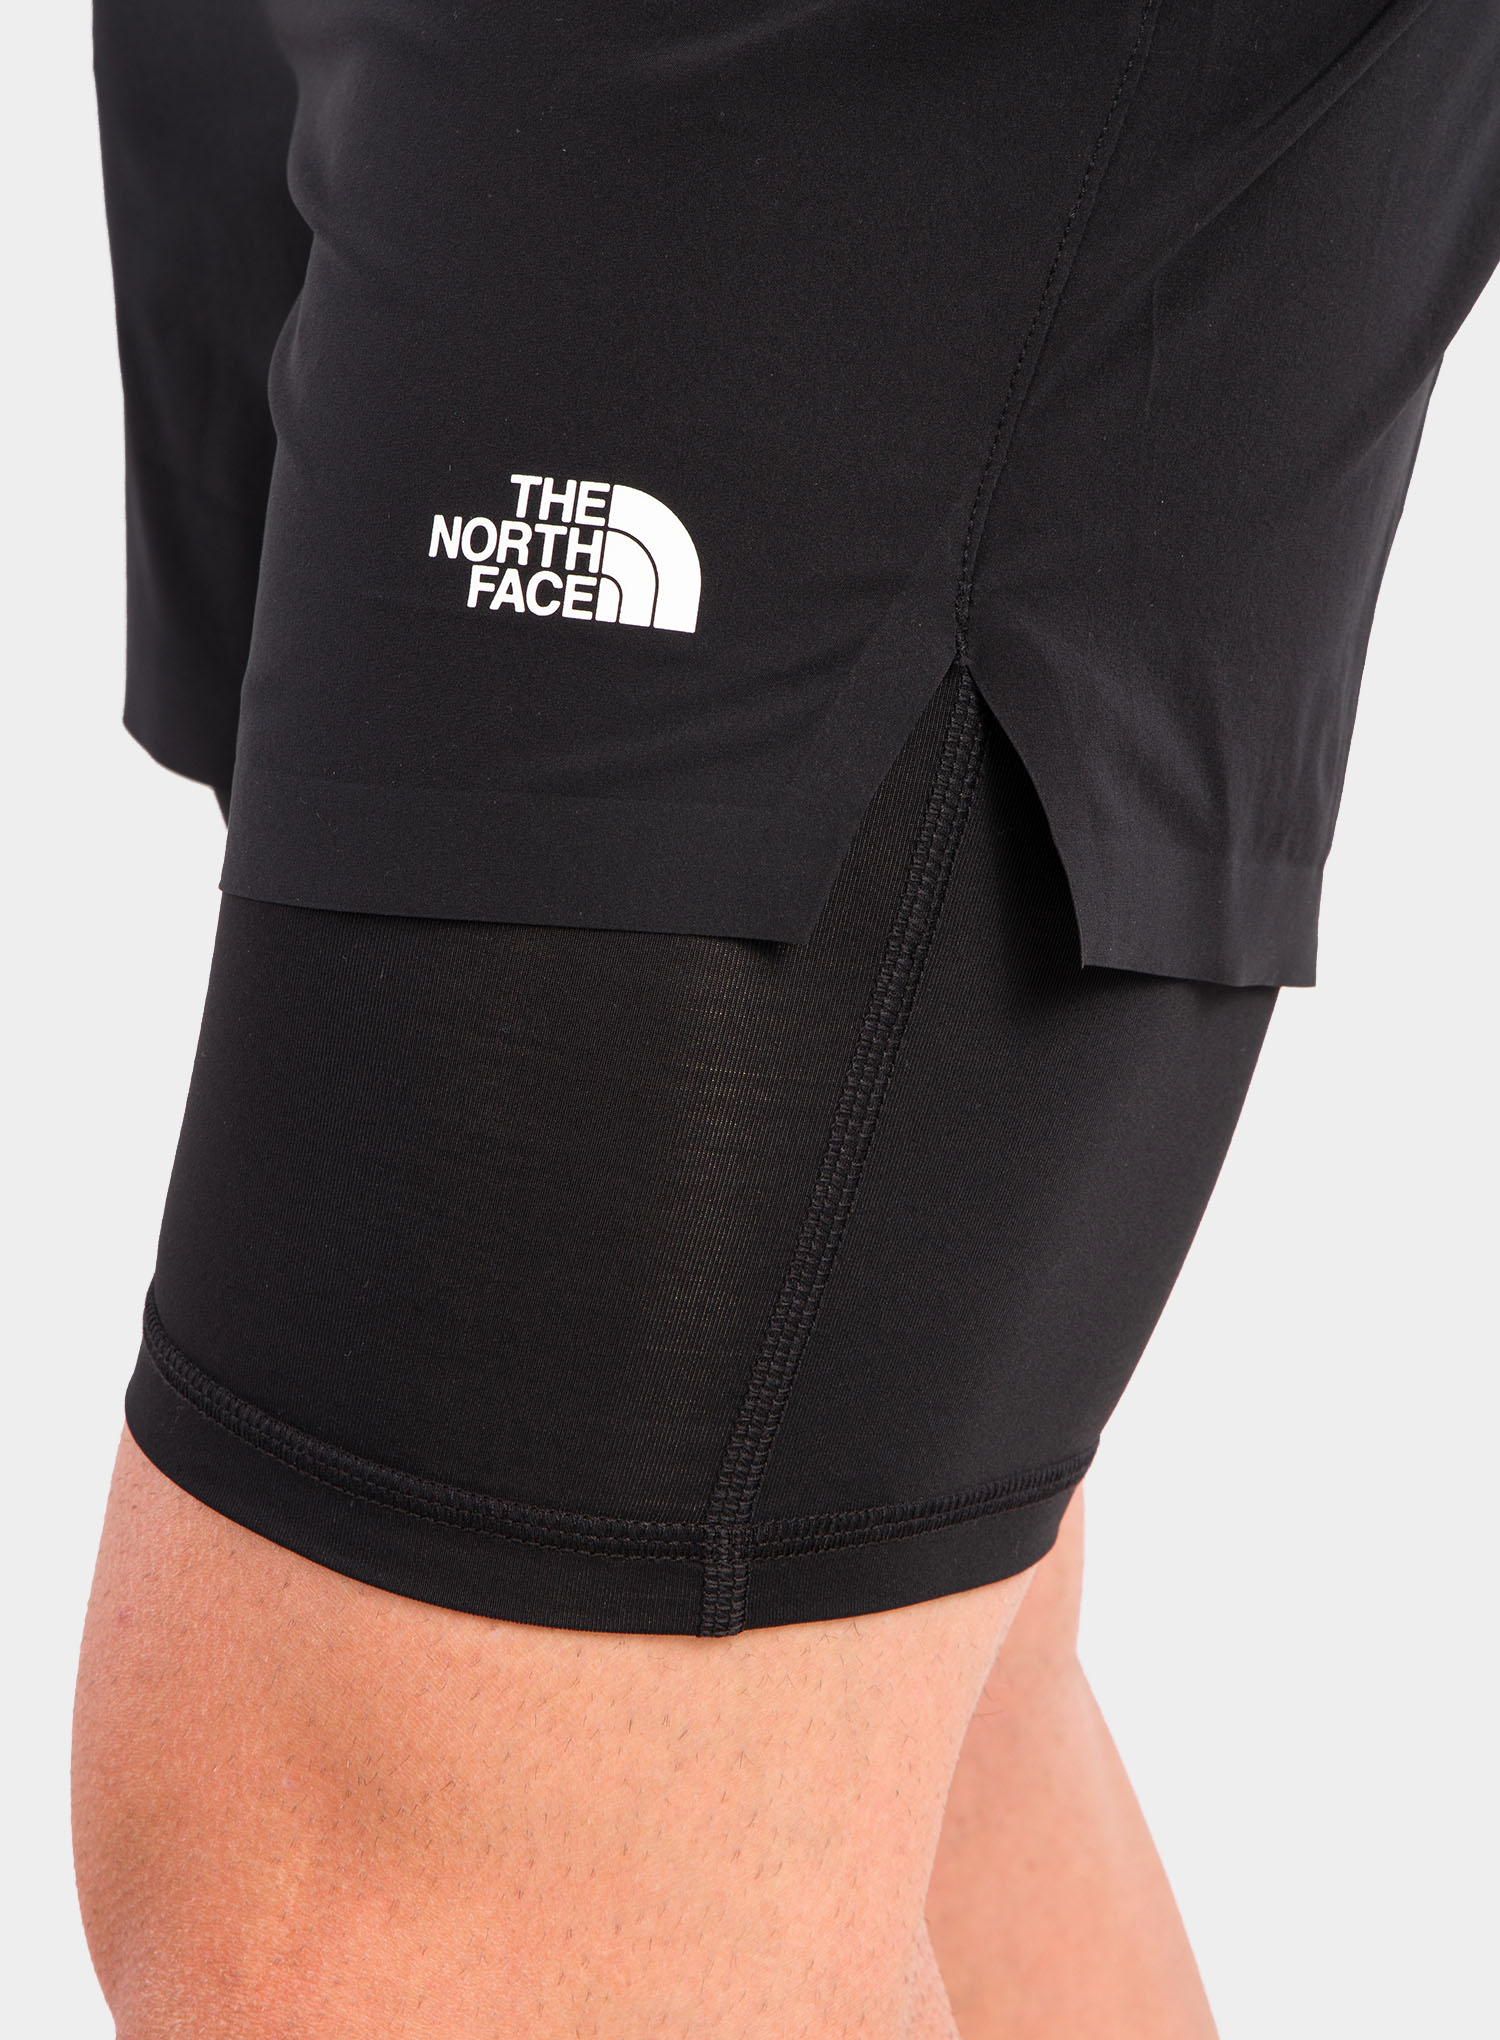 Spodenki The North Face Circadian Comp Lined Short - black - zdjęcie nr. 6